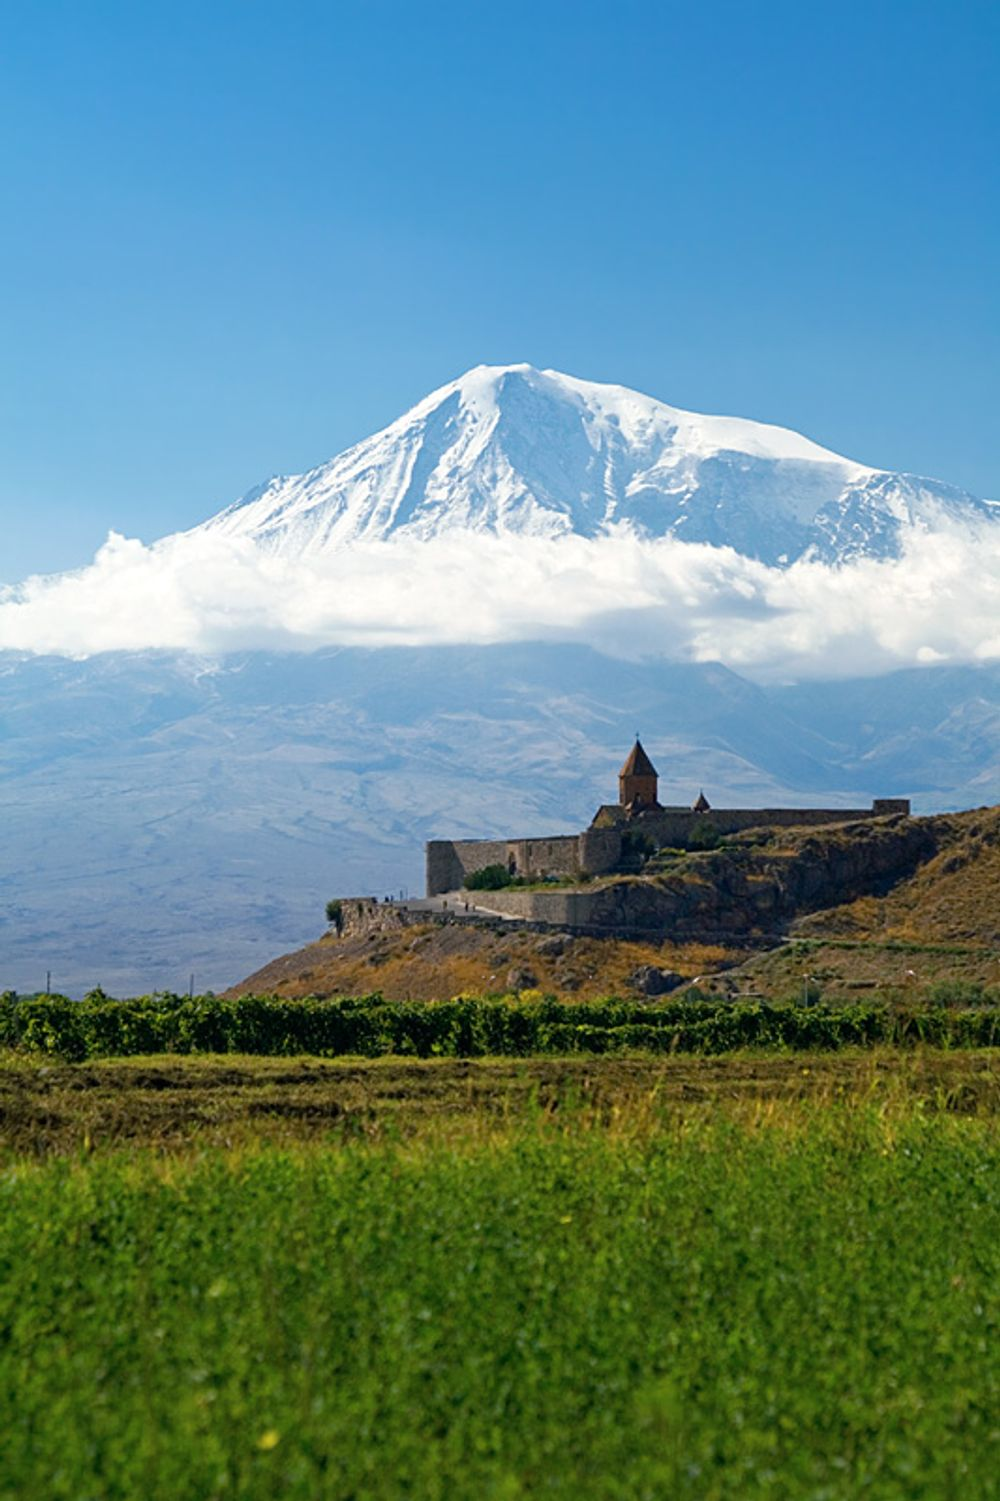 title: Masis and Khor Virap Armenia